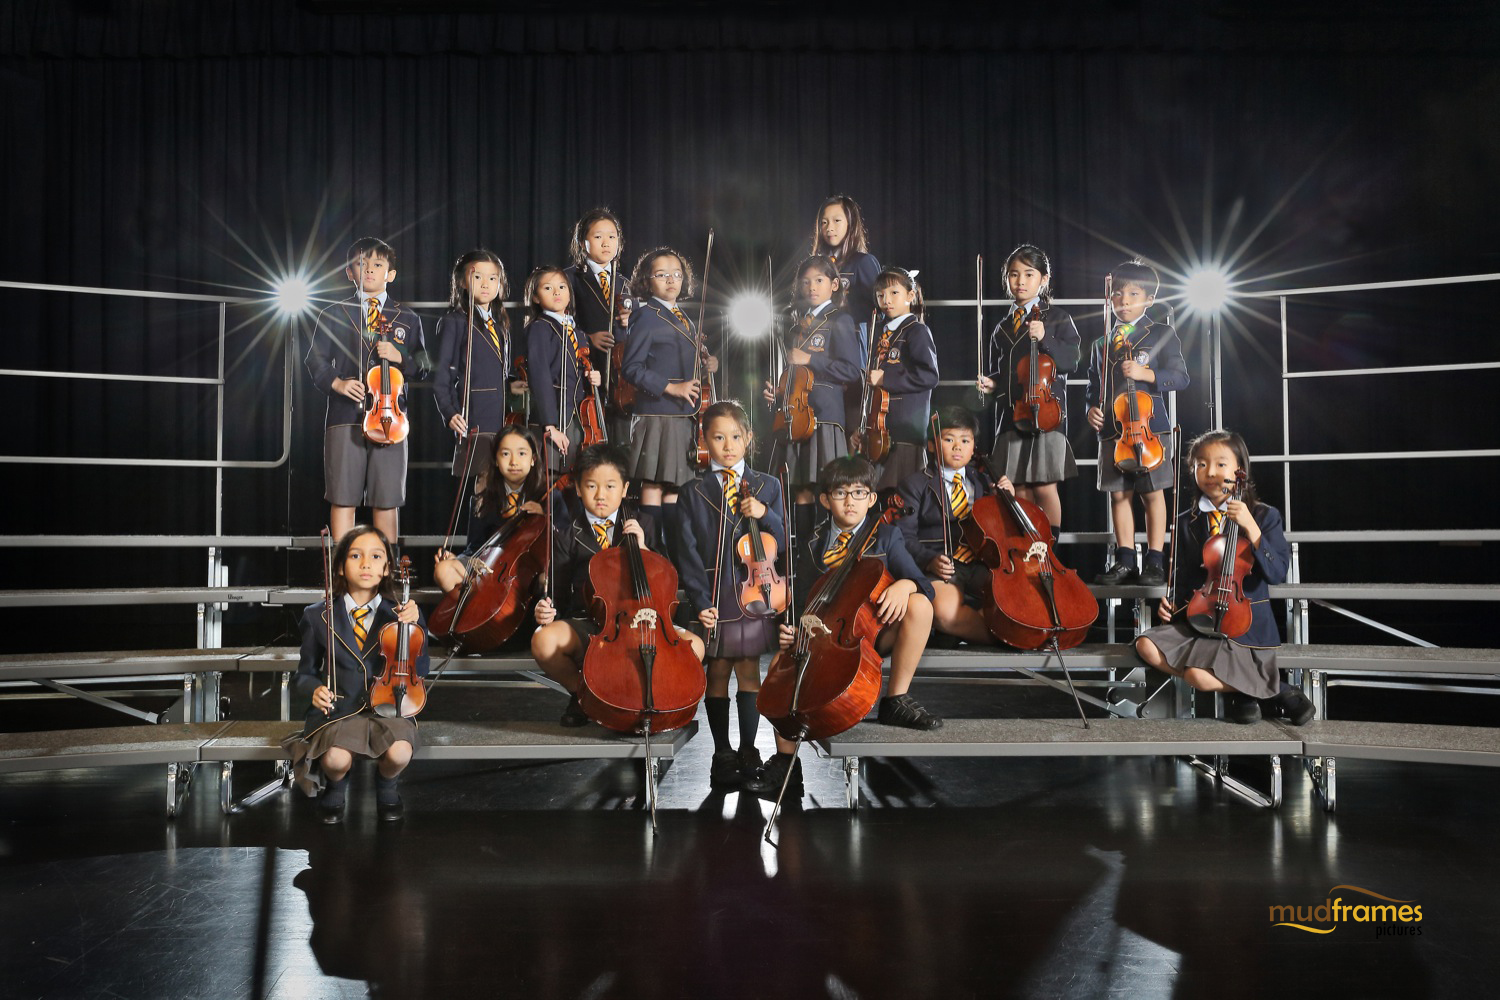 The British International School Training Orchestra